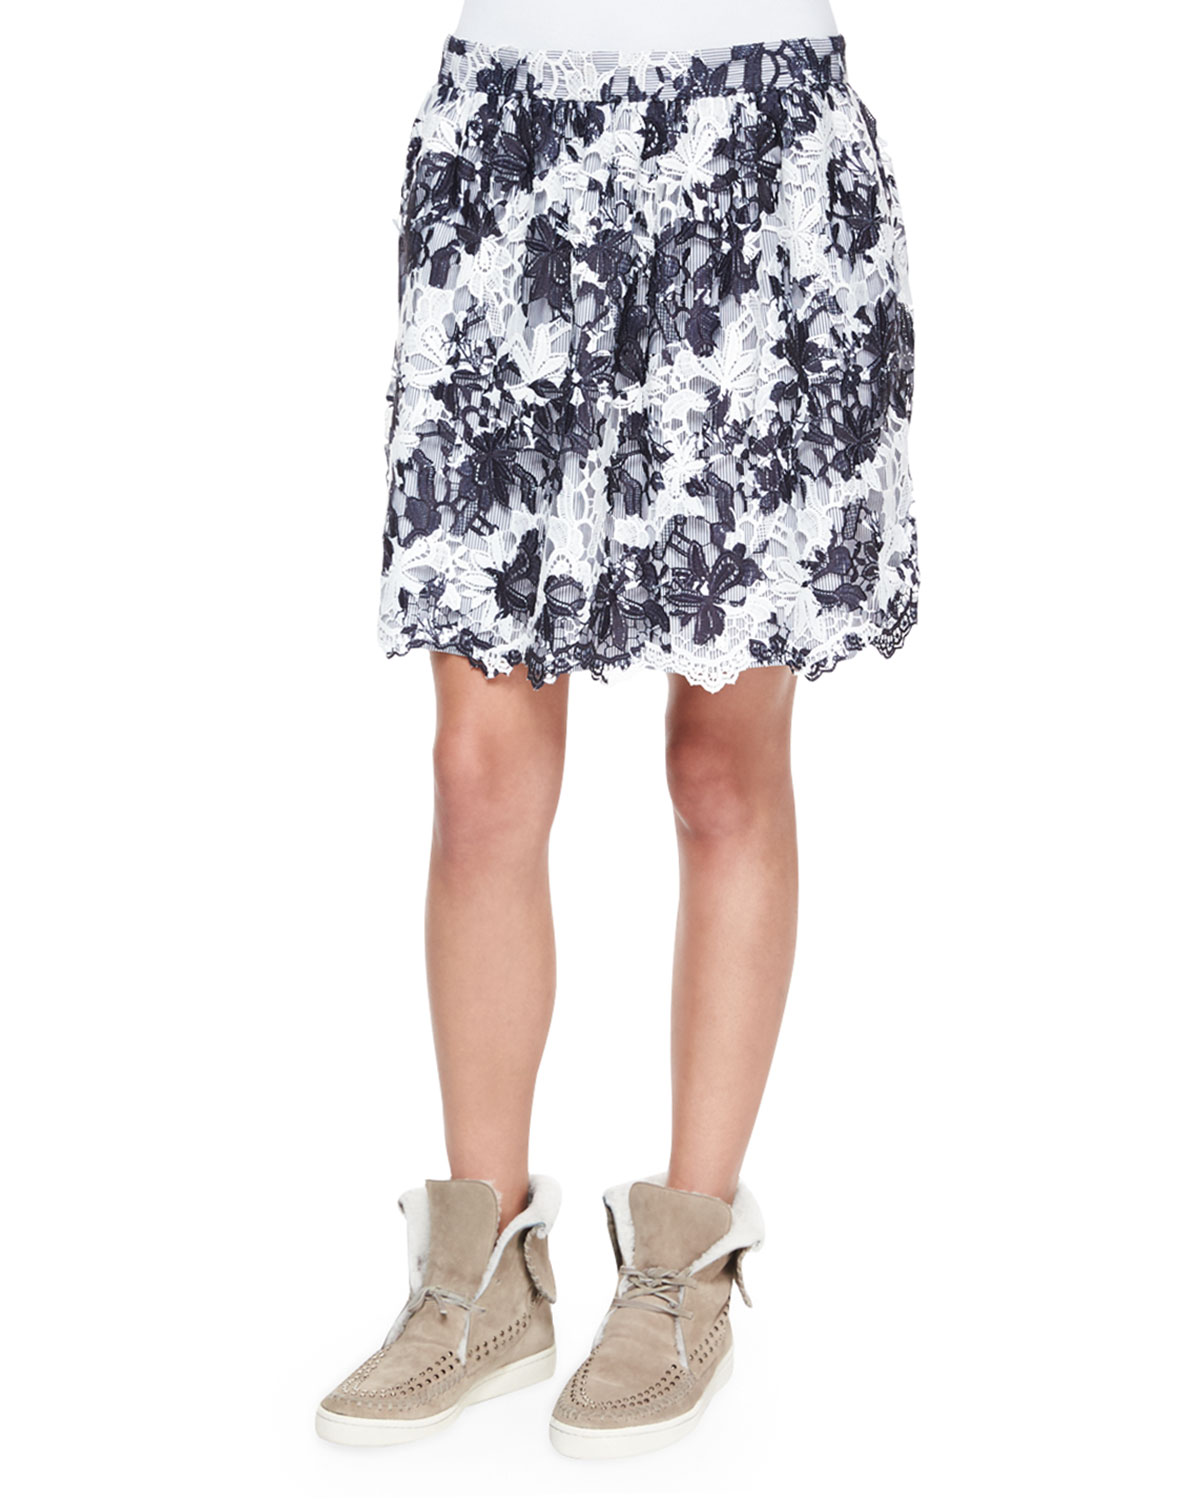 Two-Tone Lace Skirt